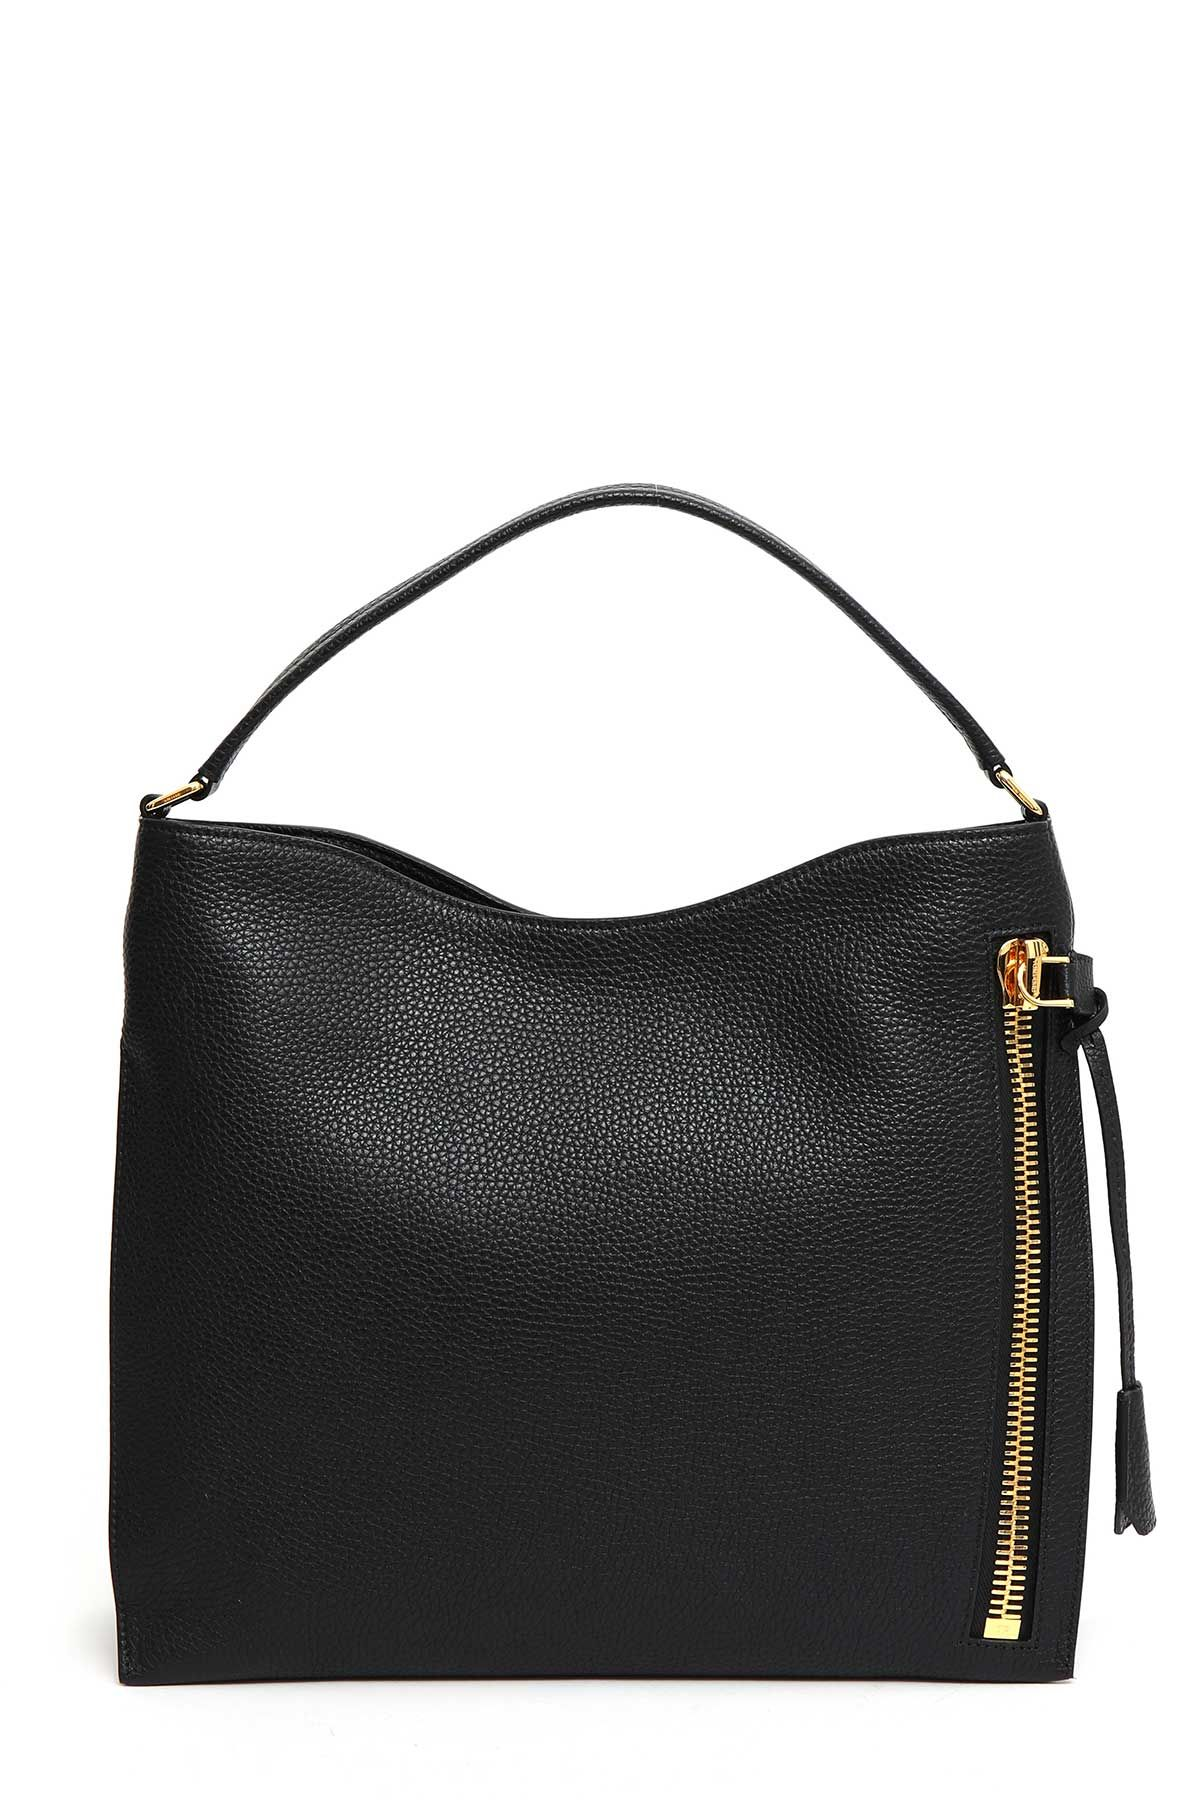 Tom Ford Tom Ford alix Hobo Small Shoulder Bag